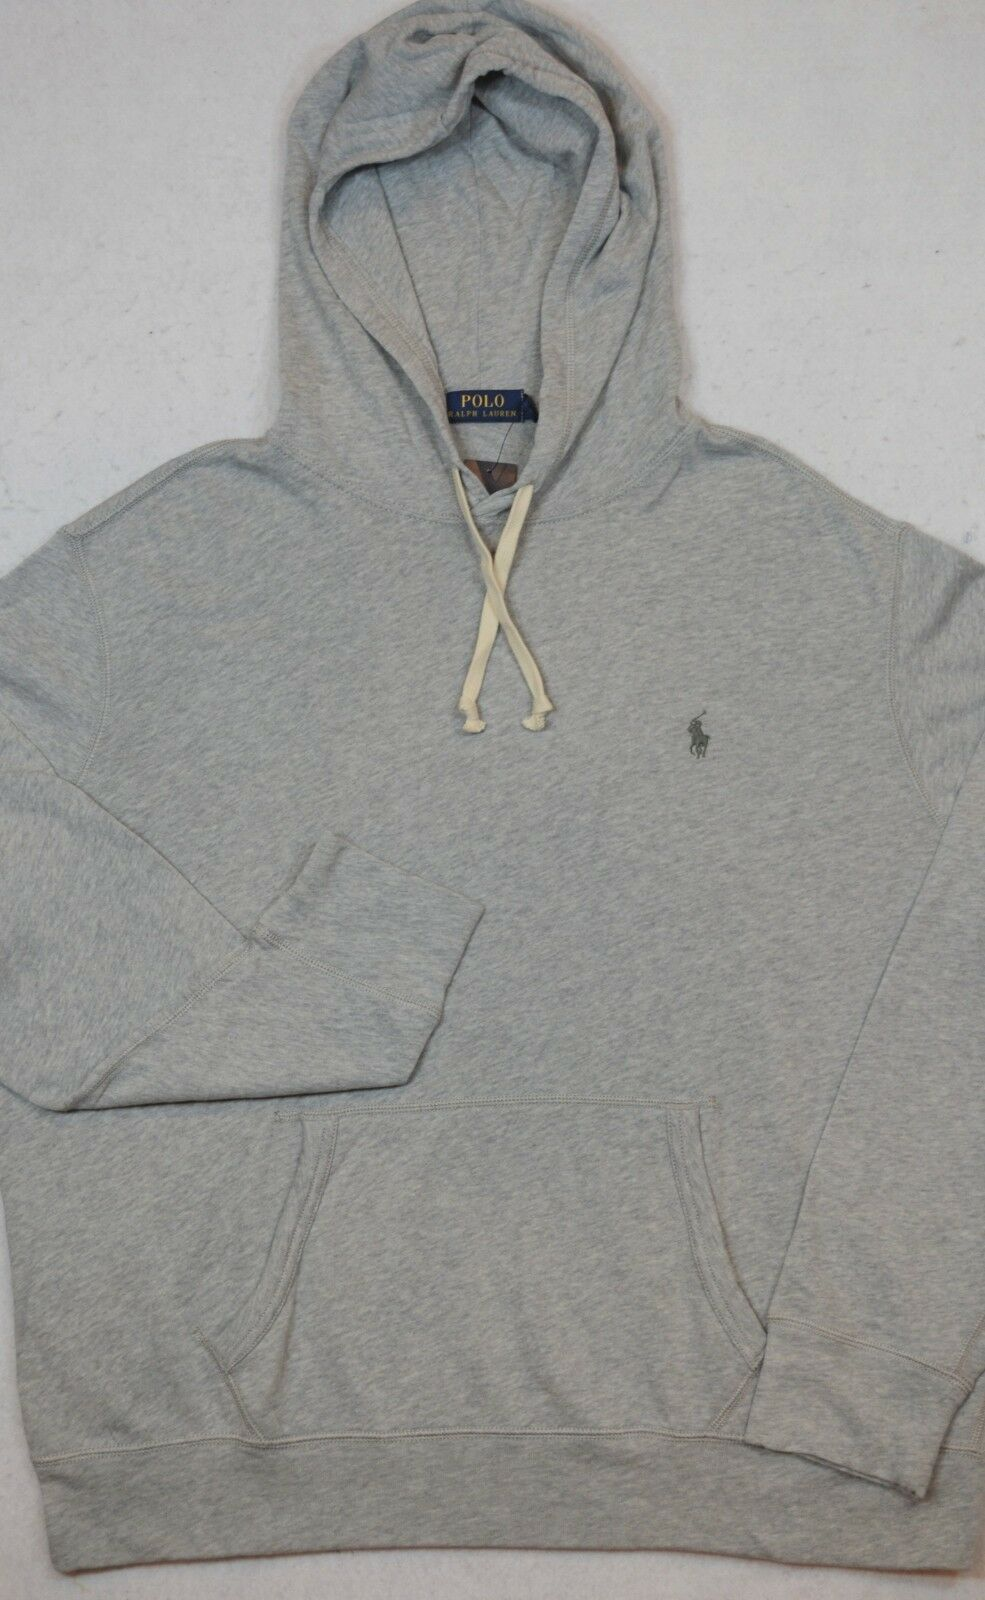 Polo Ralph Lauren Hoodie Lightweight Hooded French Terry Sweatshirt grau L NWT